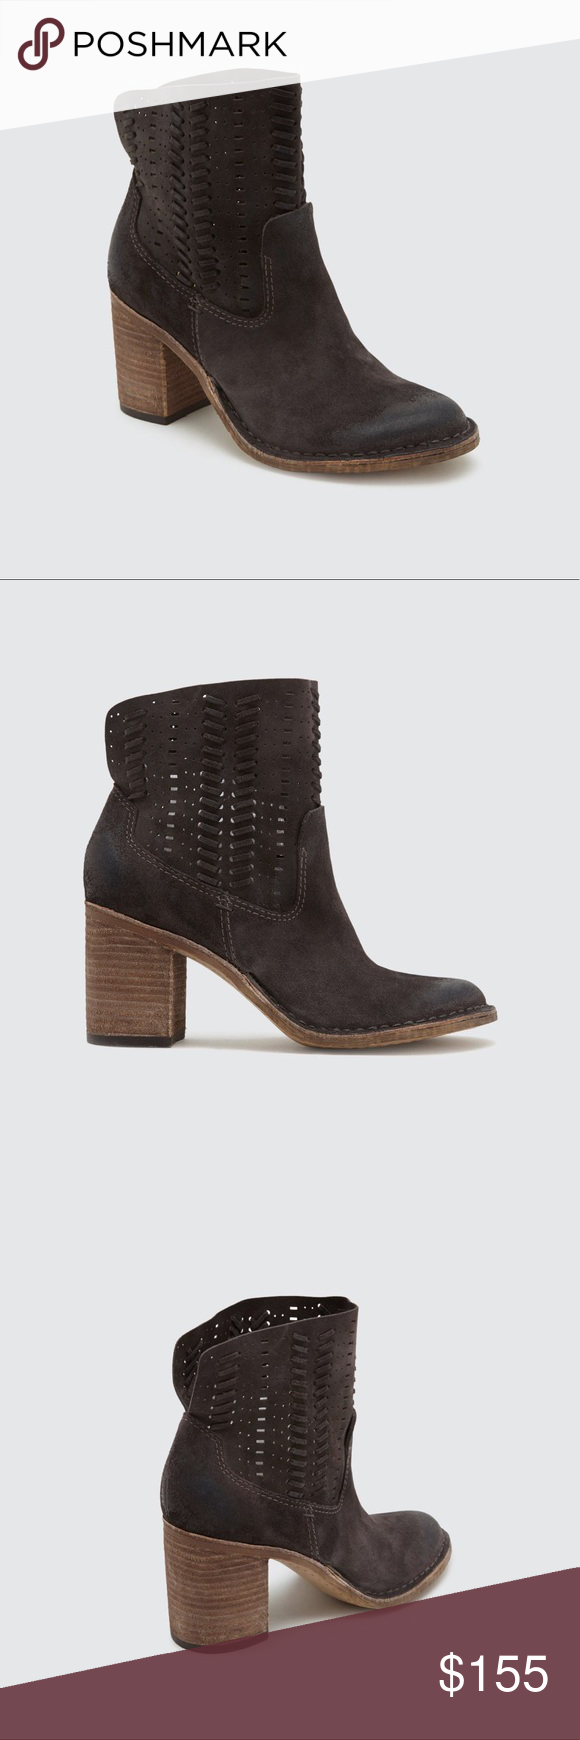 d9846431ac8b Suede Laser Cut Distressed High Bootie Not sure if it s the slouchy suede  that does wonders